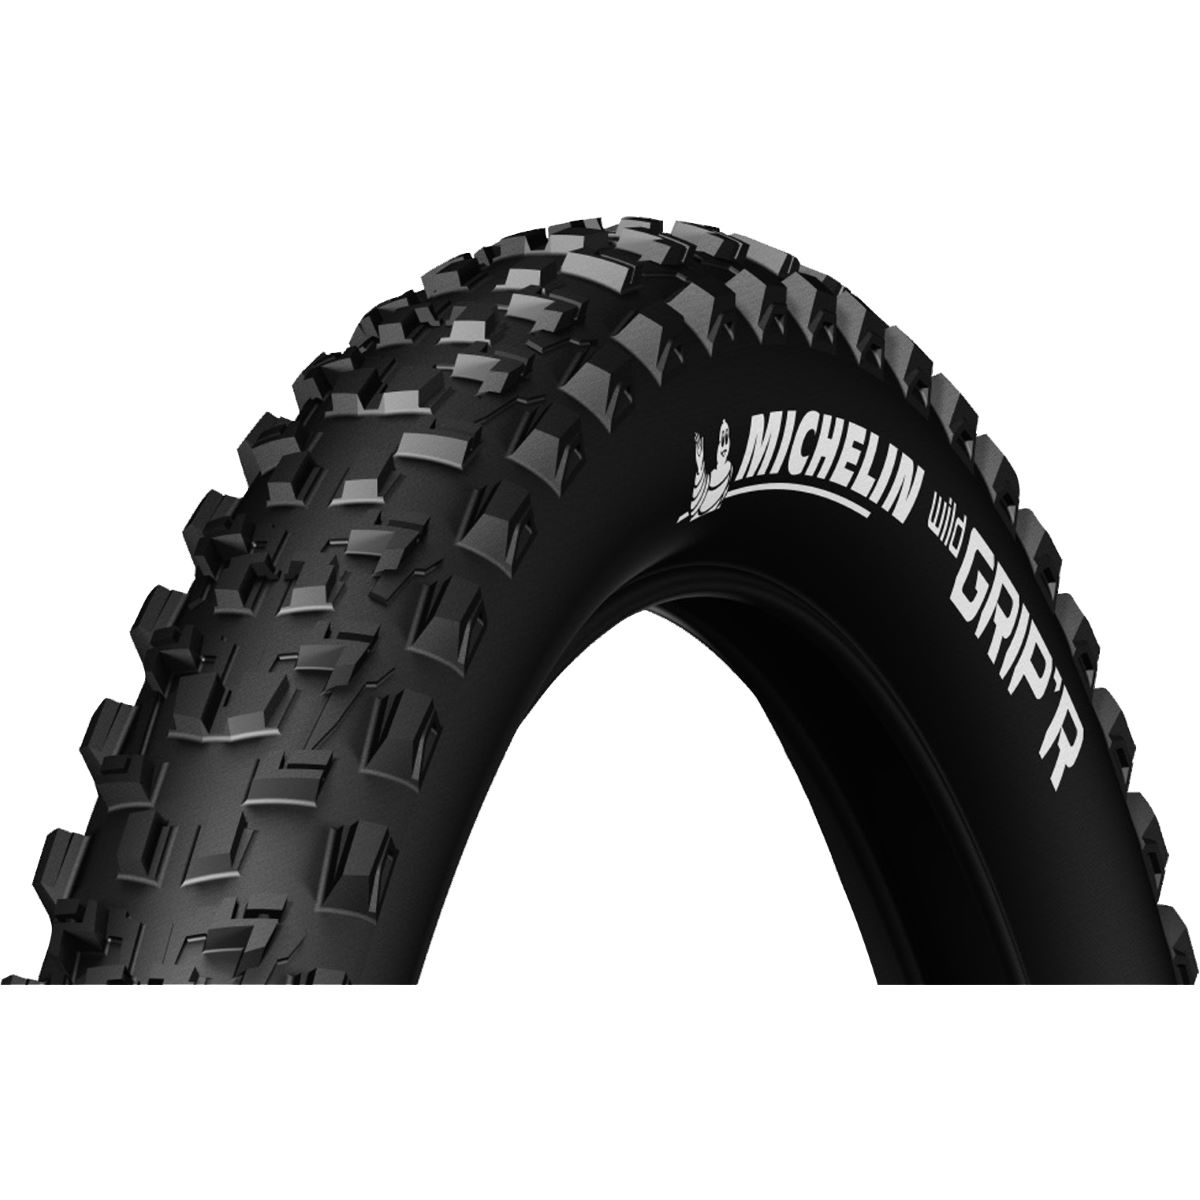 Pneu VTT Michelin Wild Grip'r Advanced Reinforced 29 pouces - Noir